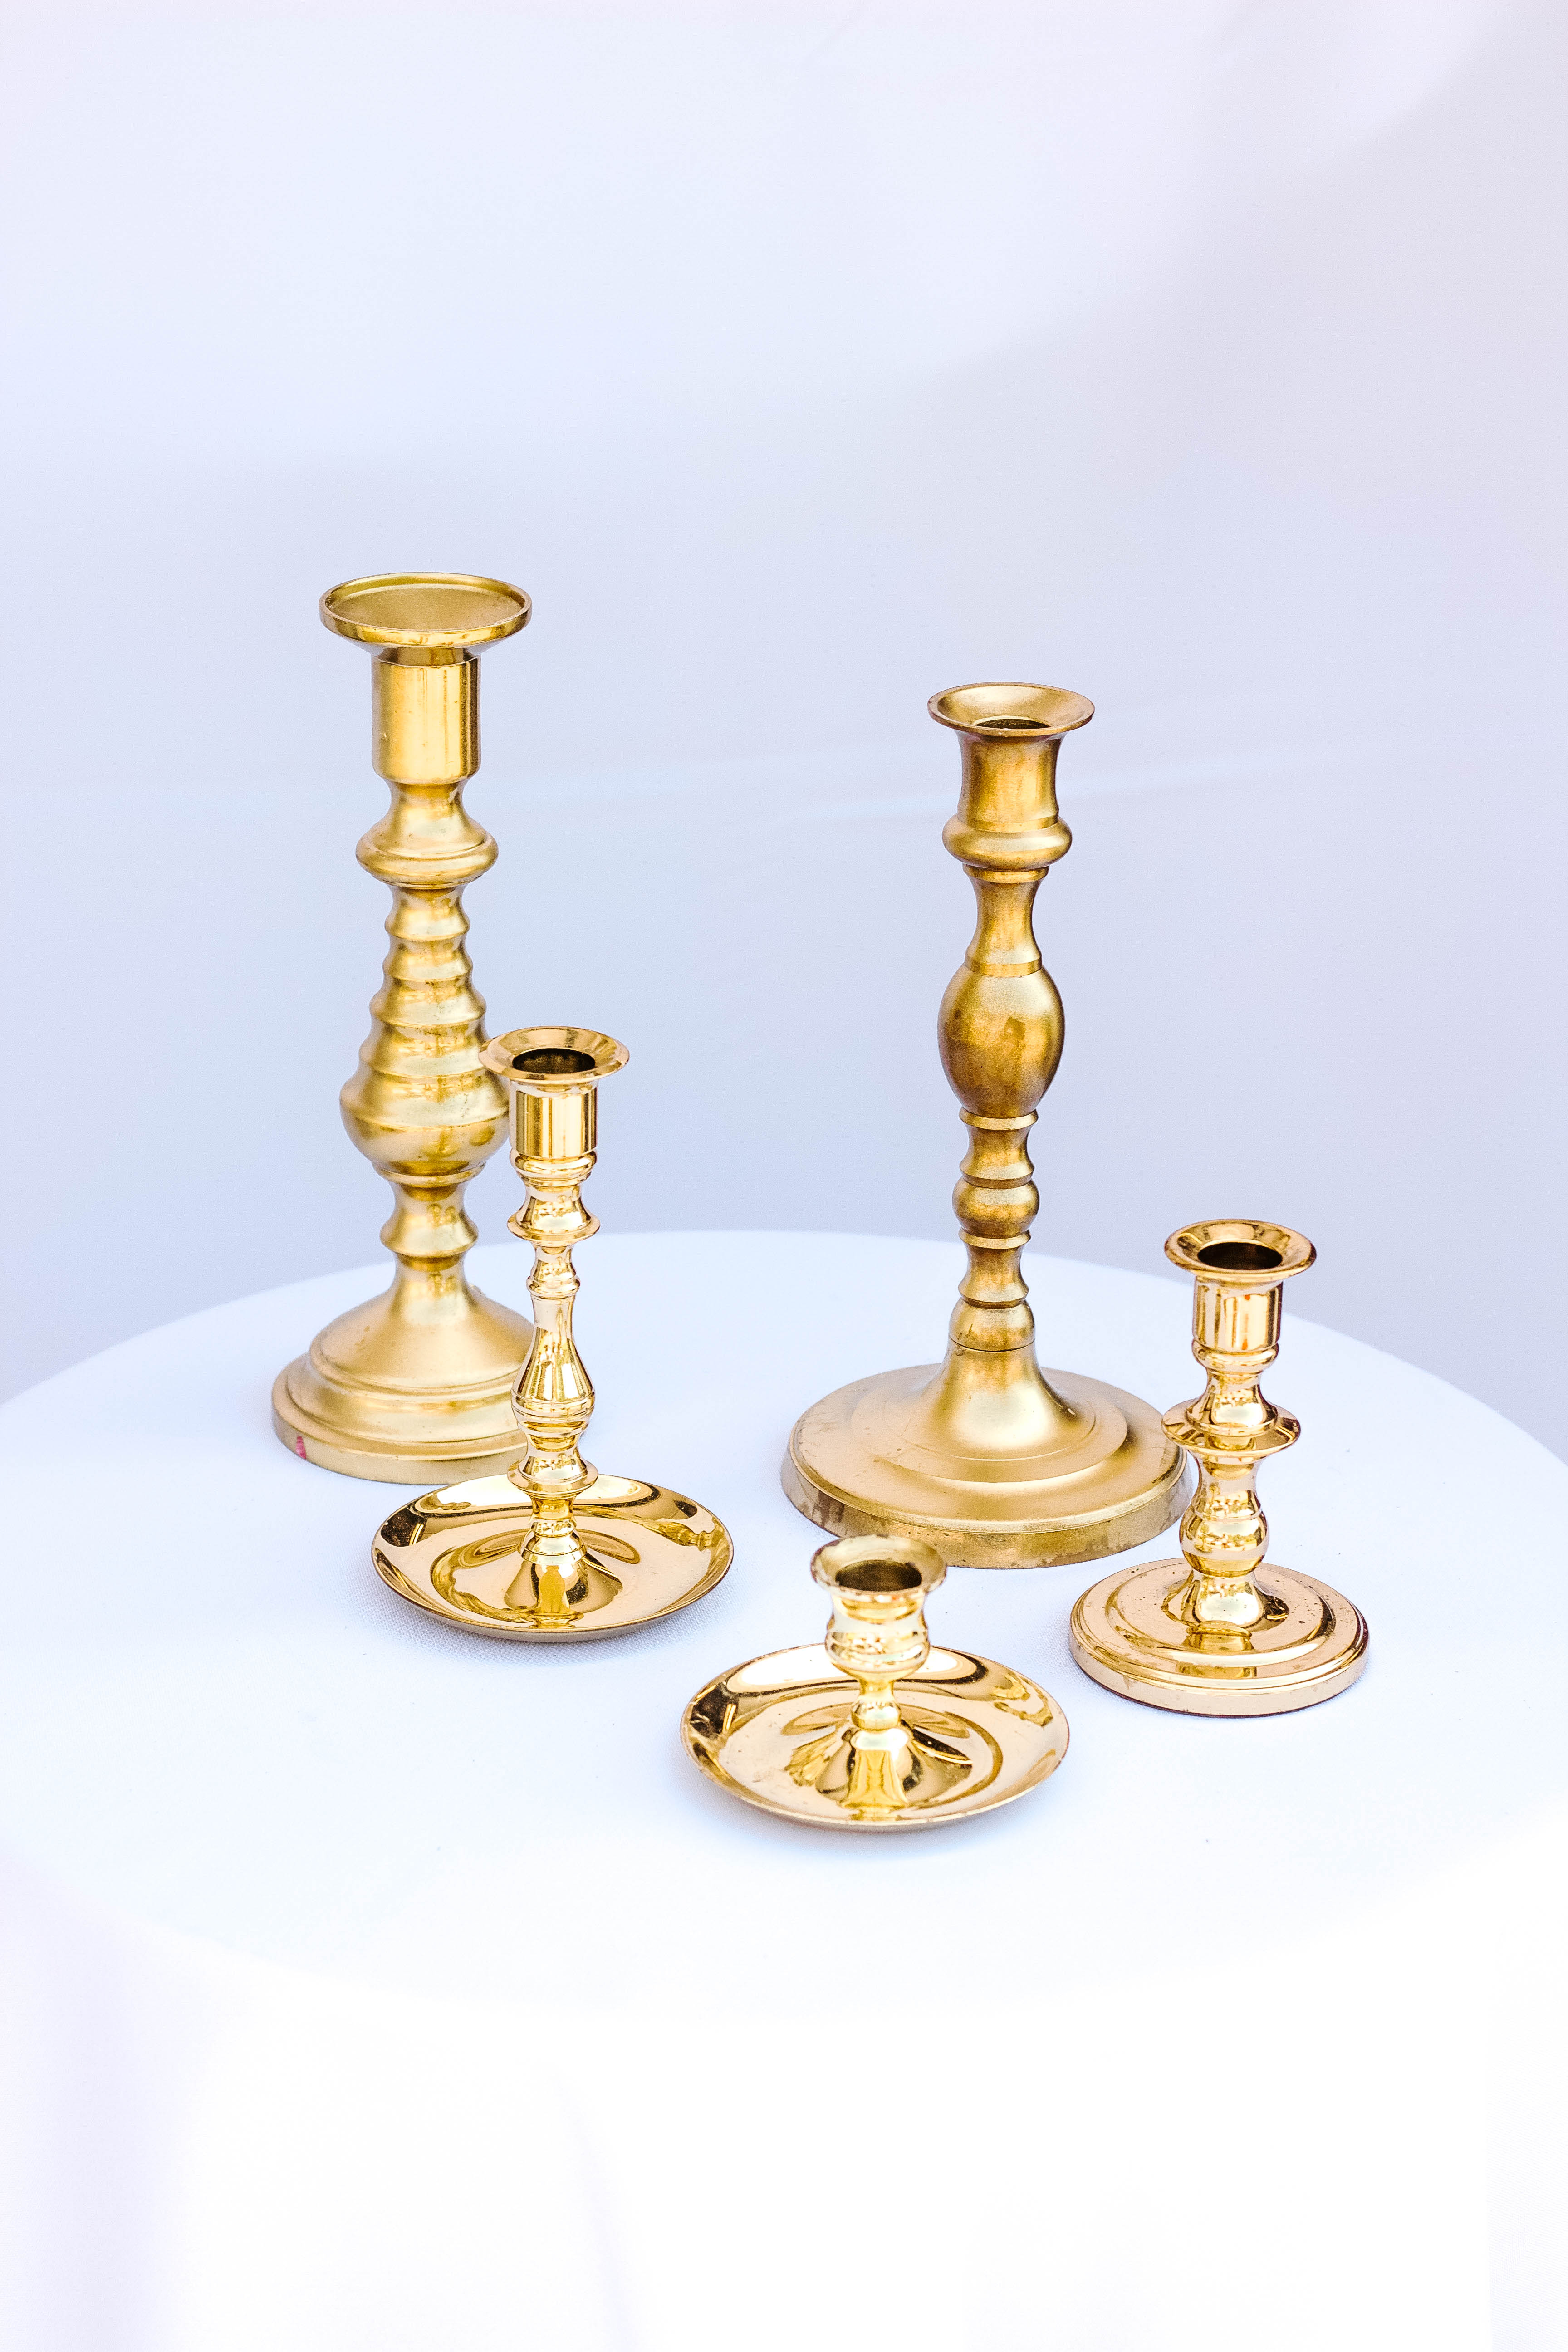 Gold Tapered Candlesticks